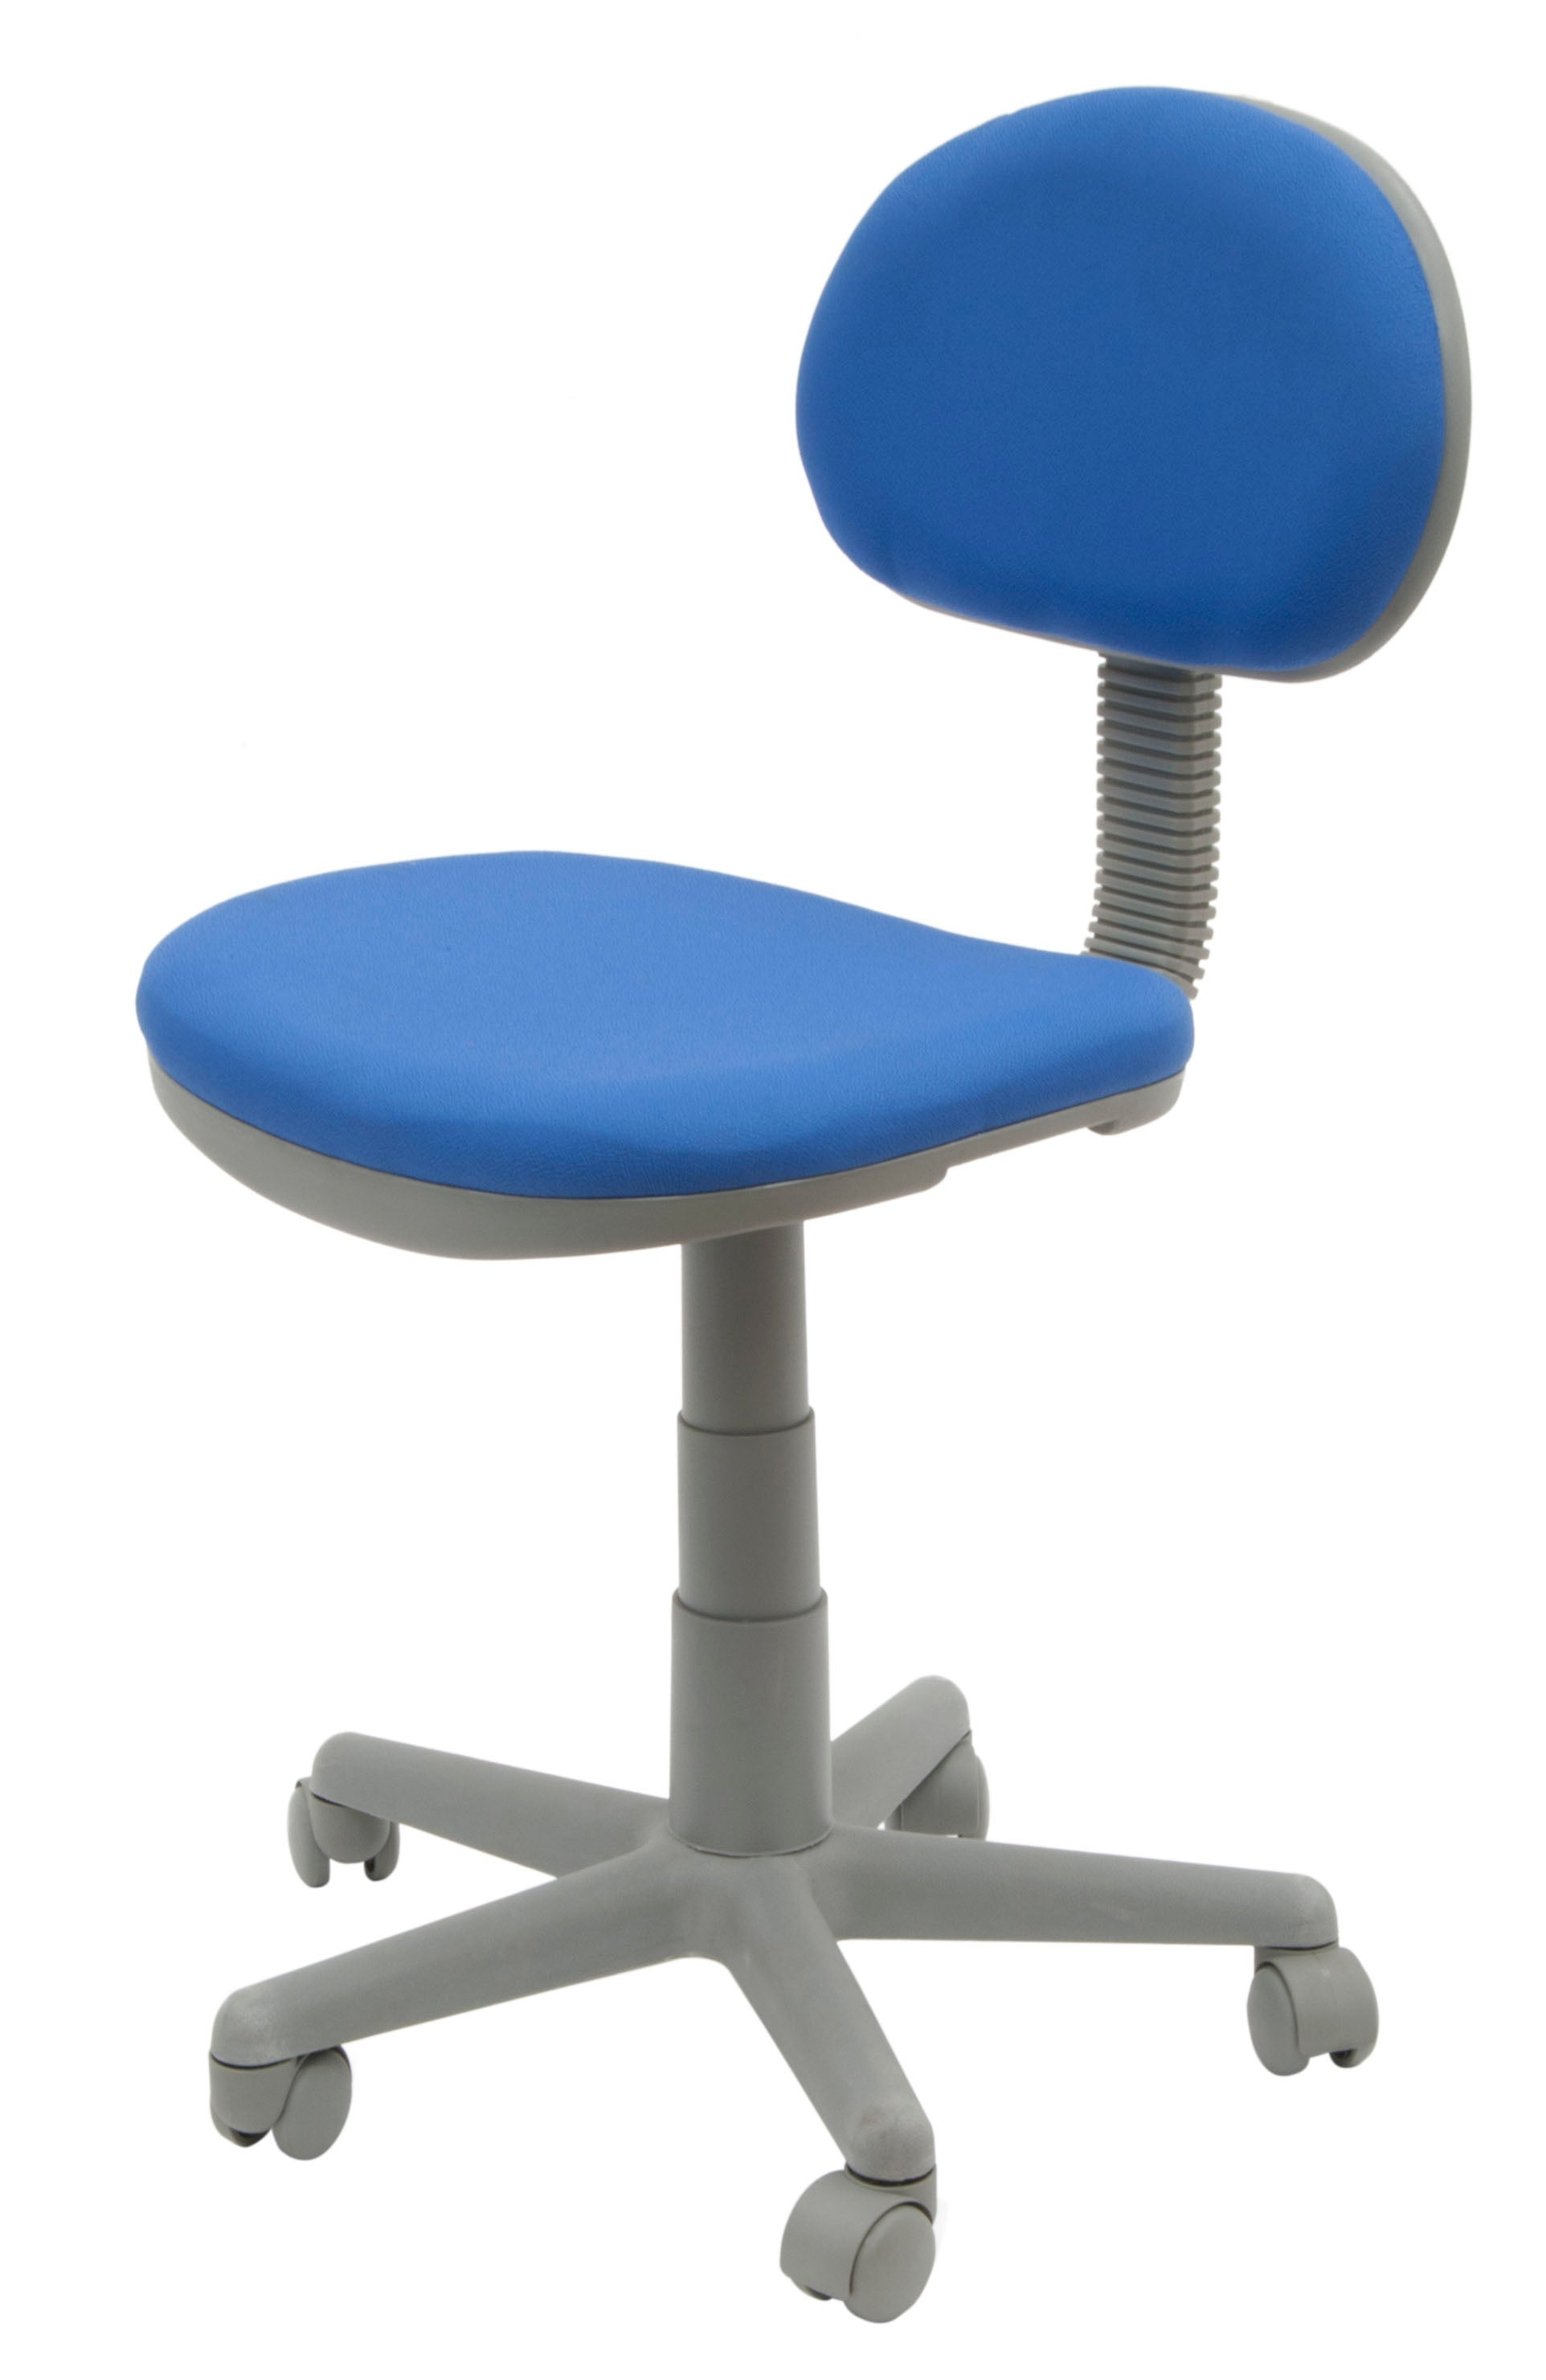 Studio Designs Blue/Gray Adjustable-seat Deluxe Office/Task Chair